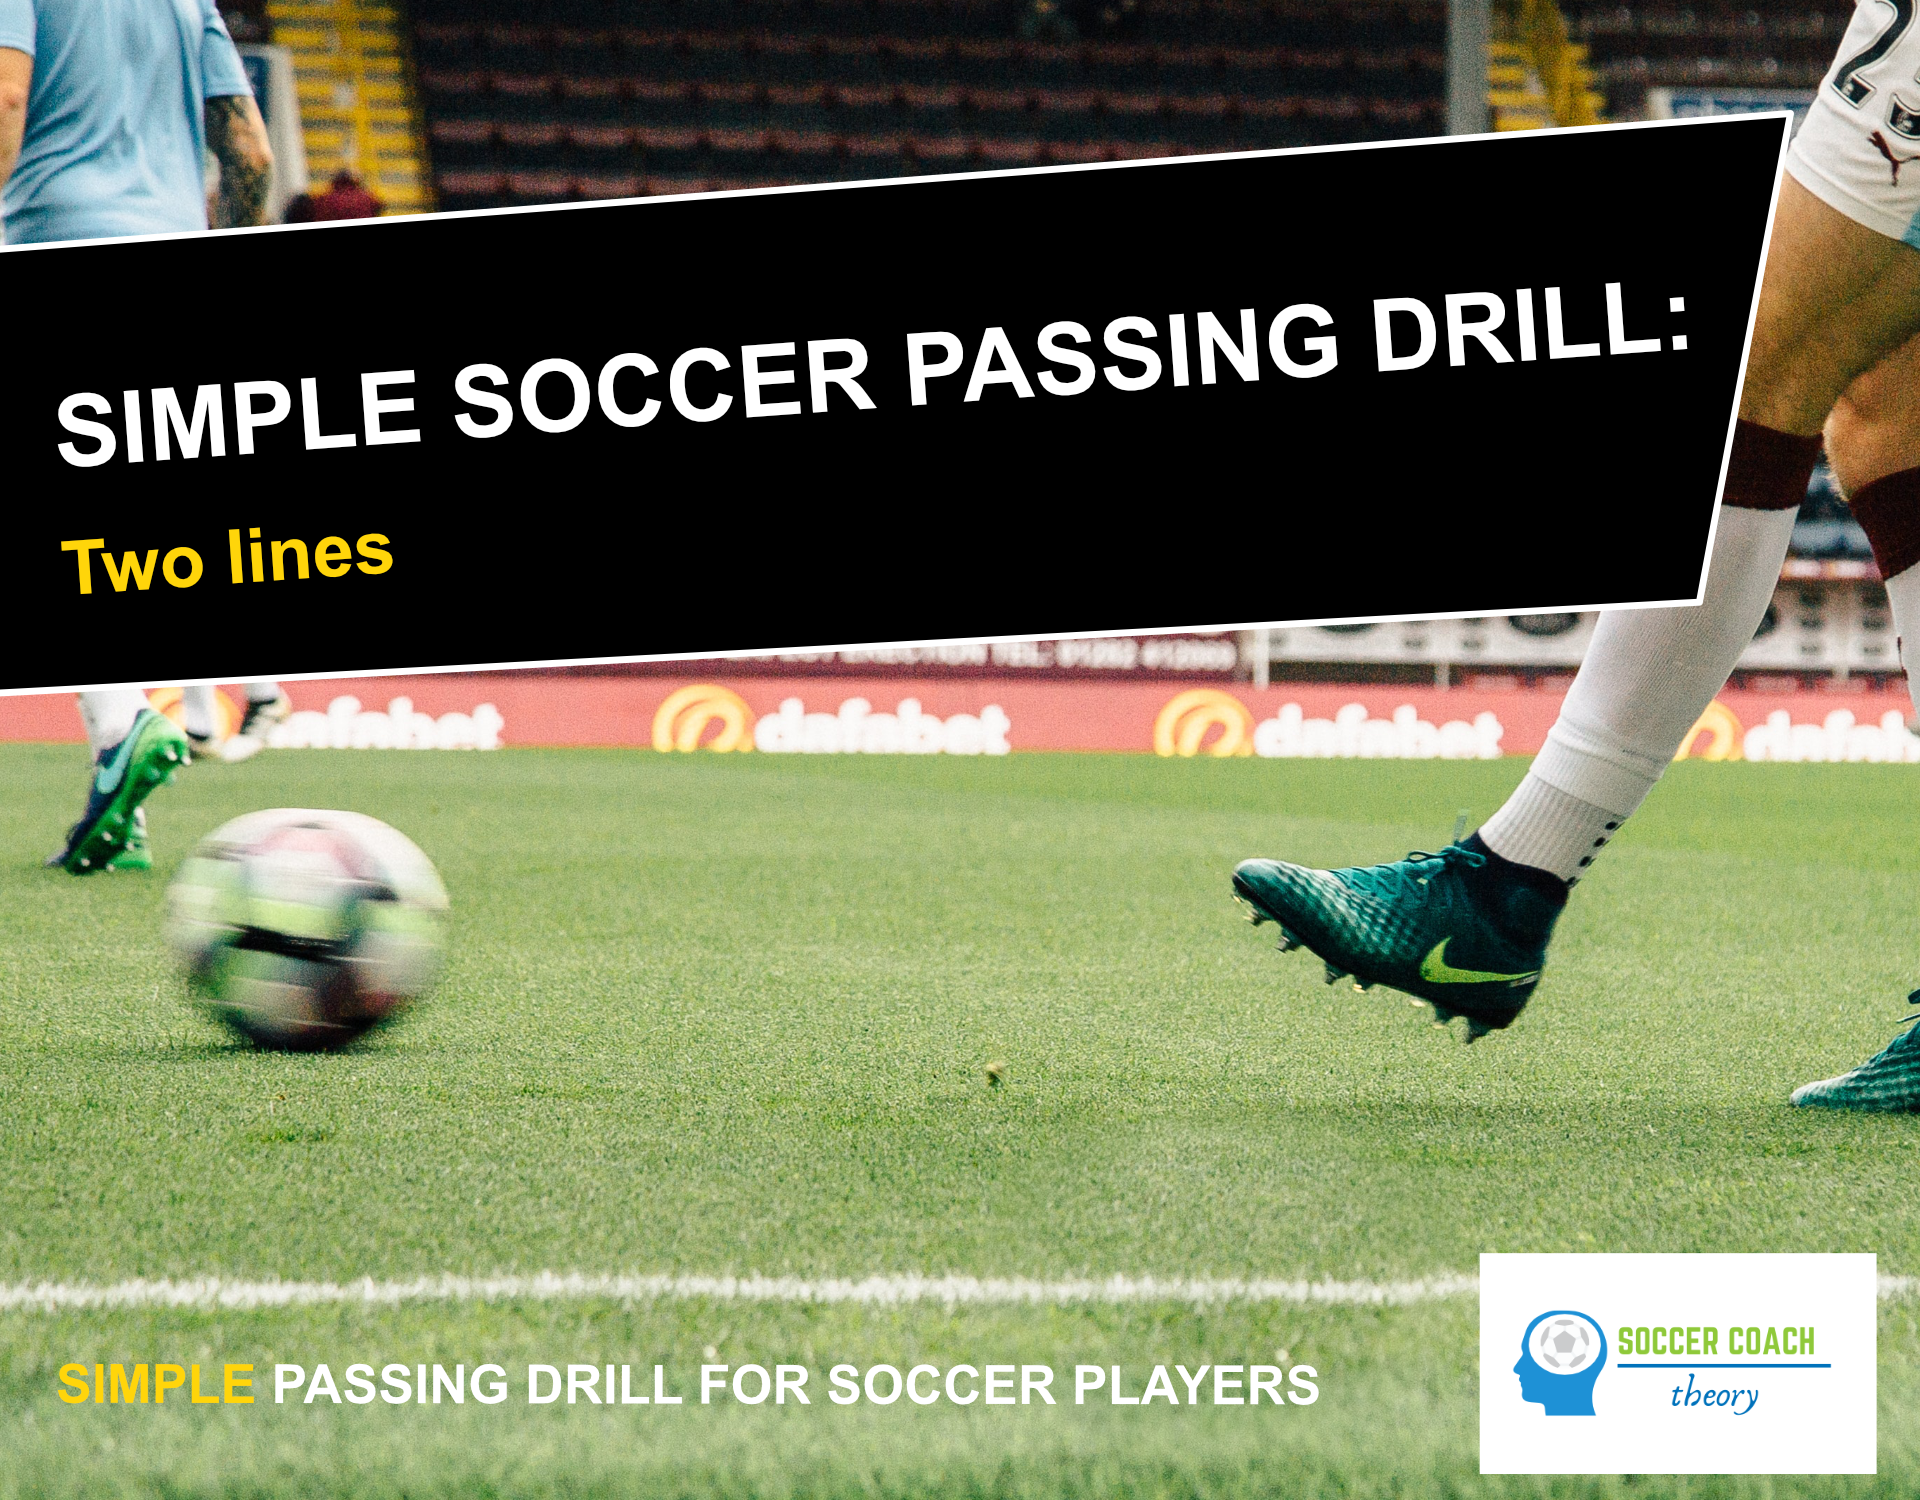 Simple soccer passing drill cover